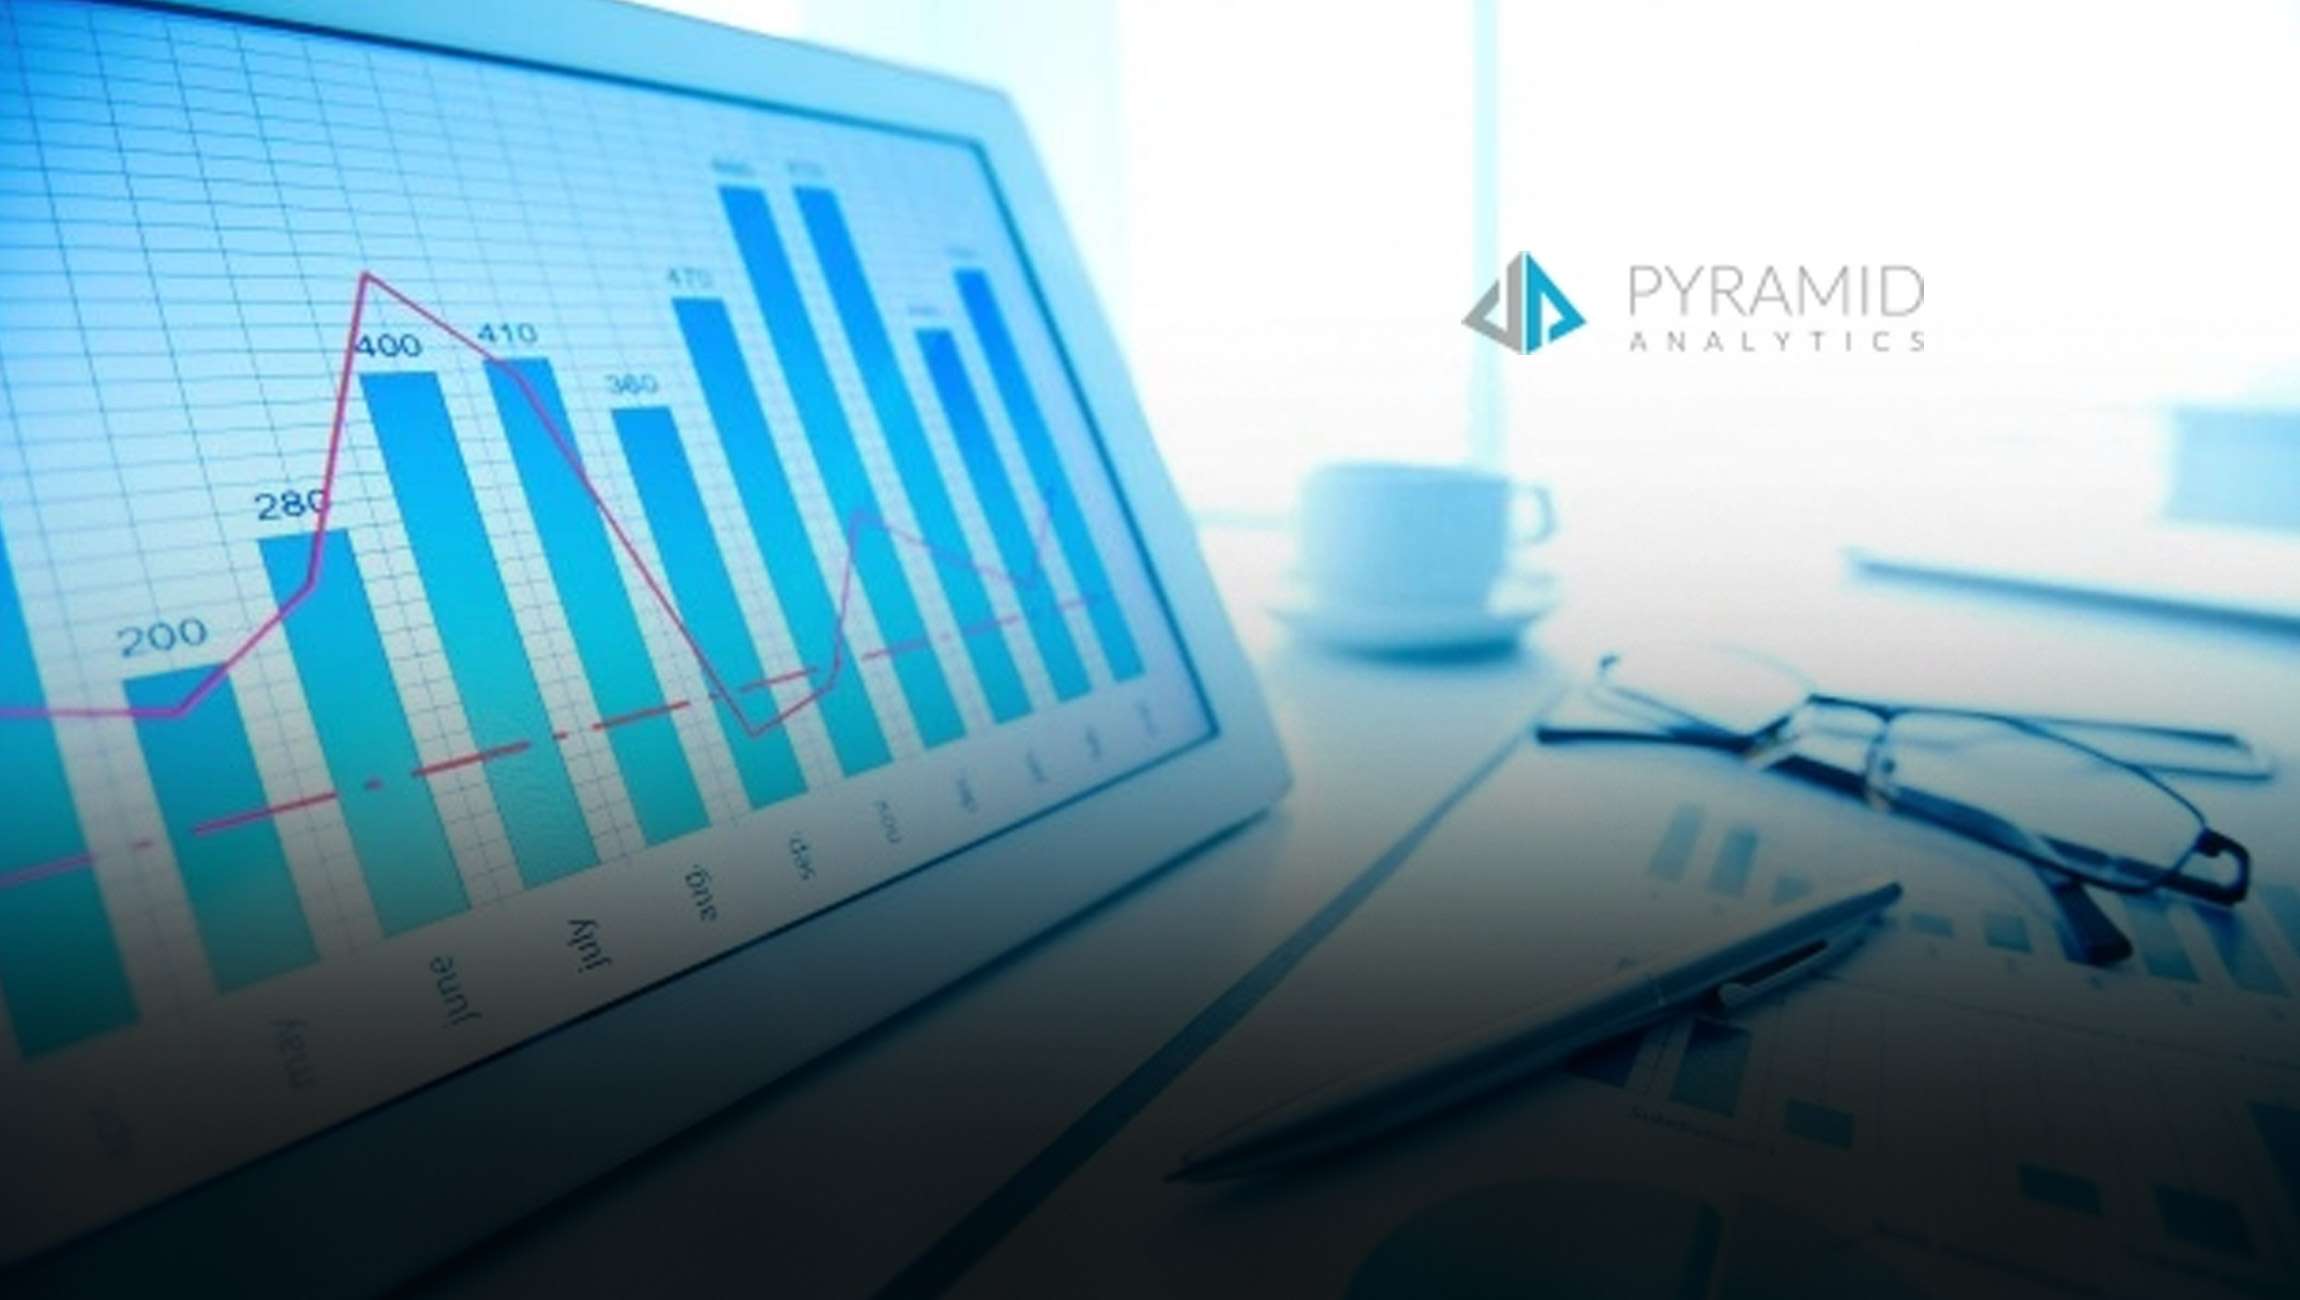 Pyramid Analytics Earns 92 Top Rankings and 90 Leading Positions in BARC's The BI & Analytics Survey 21